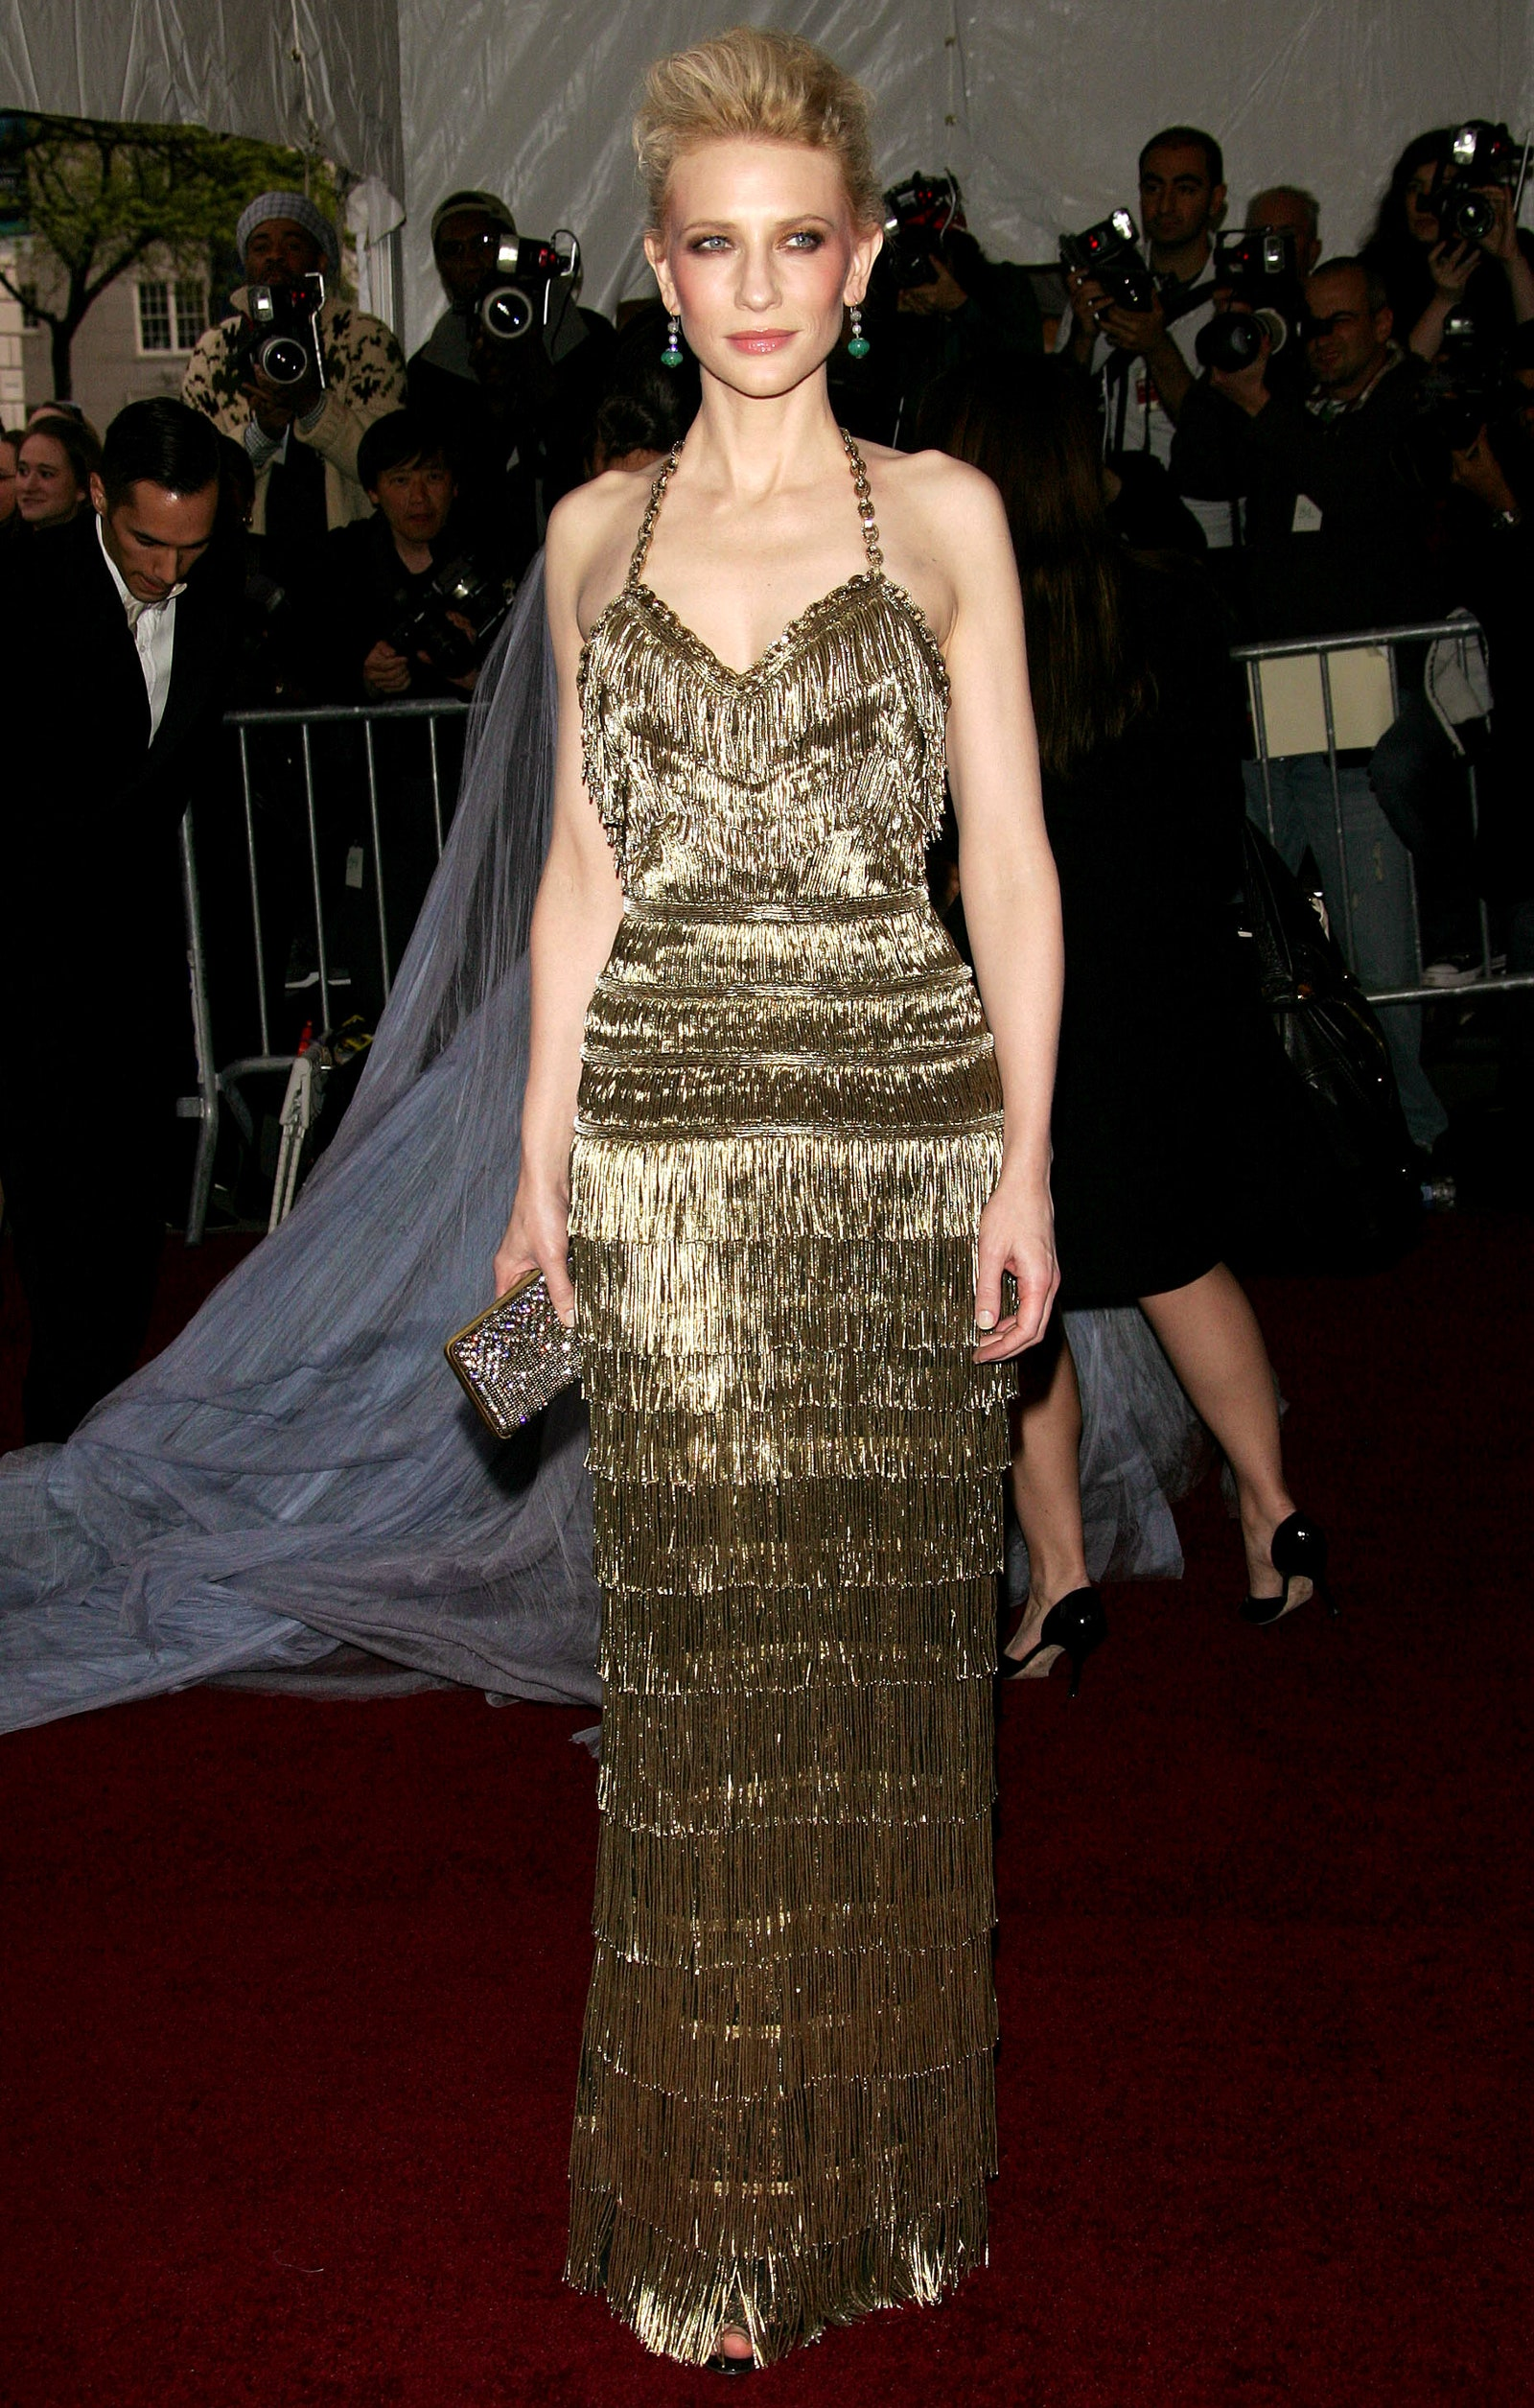 9_at_the_2007_met_gala_the_theme_honored_glamorous_french_couturier_paul_poiret_and_she_chose_a_glittering_balenciaga_gown_for_the_occasion.jpg